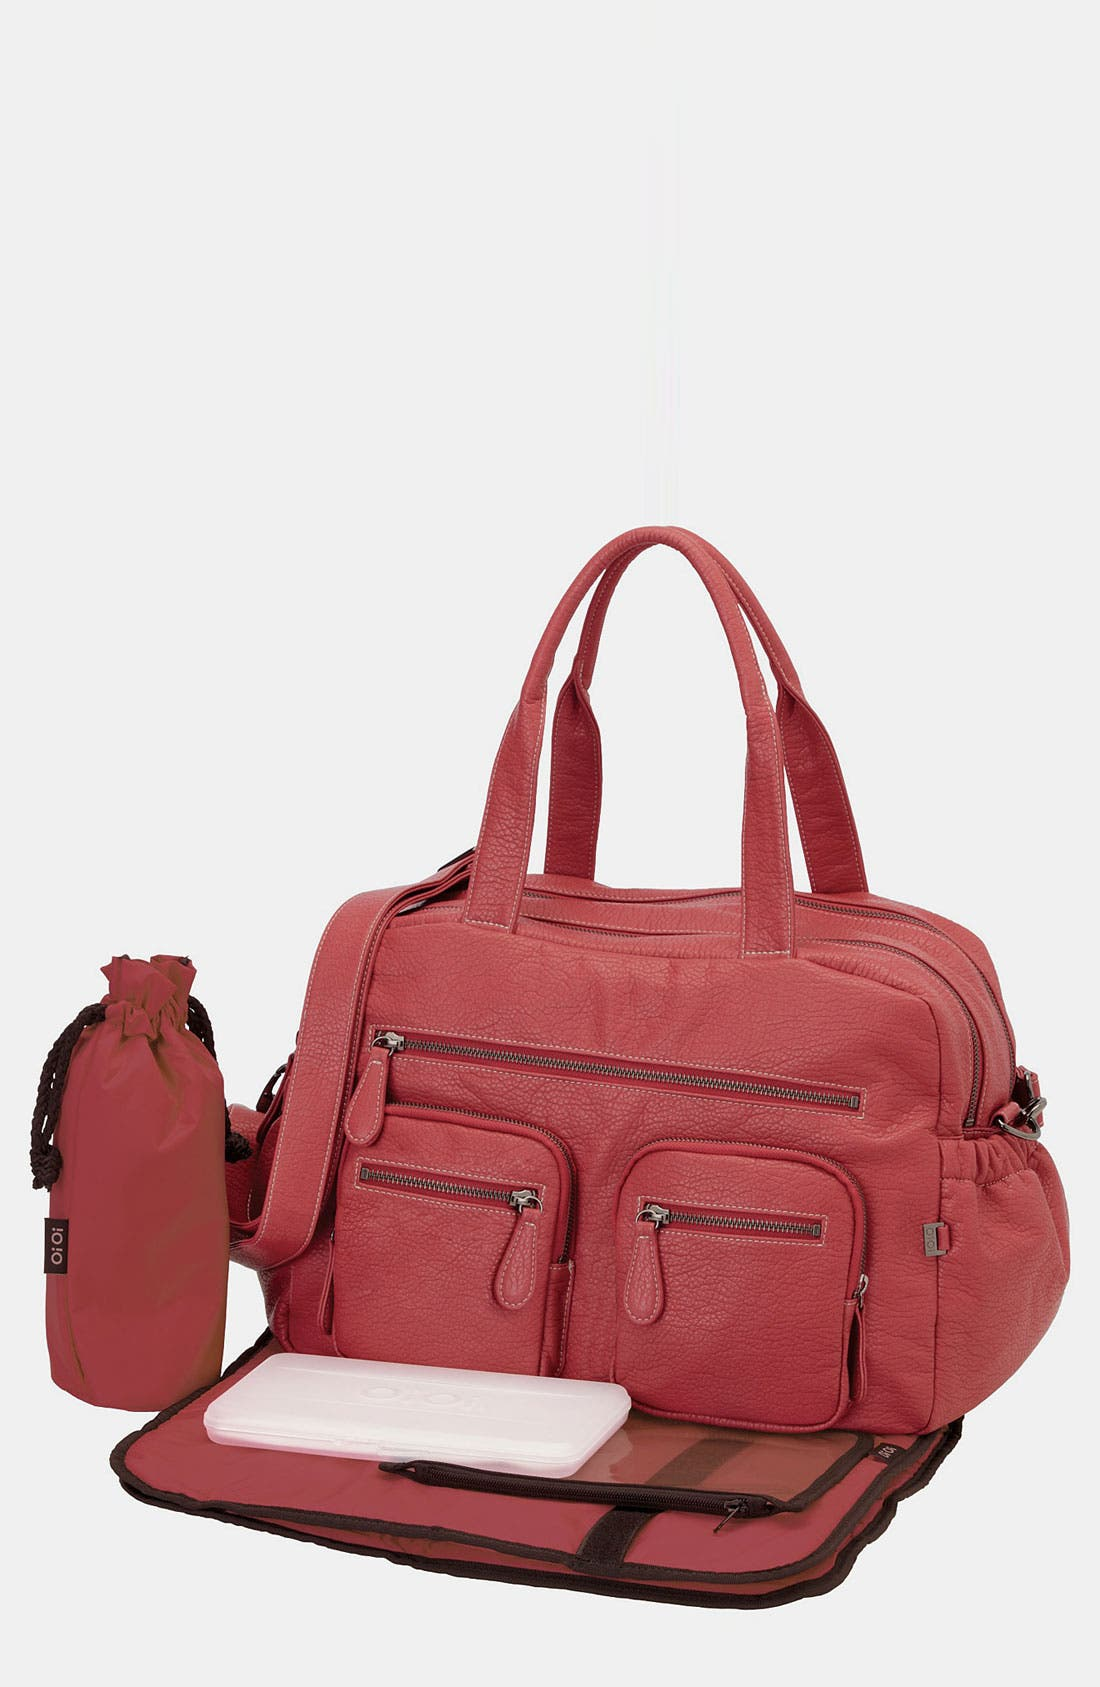 Carryall Diaper Bag,                             Main thumbnail 1, color,                             Dark Pink